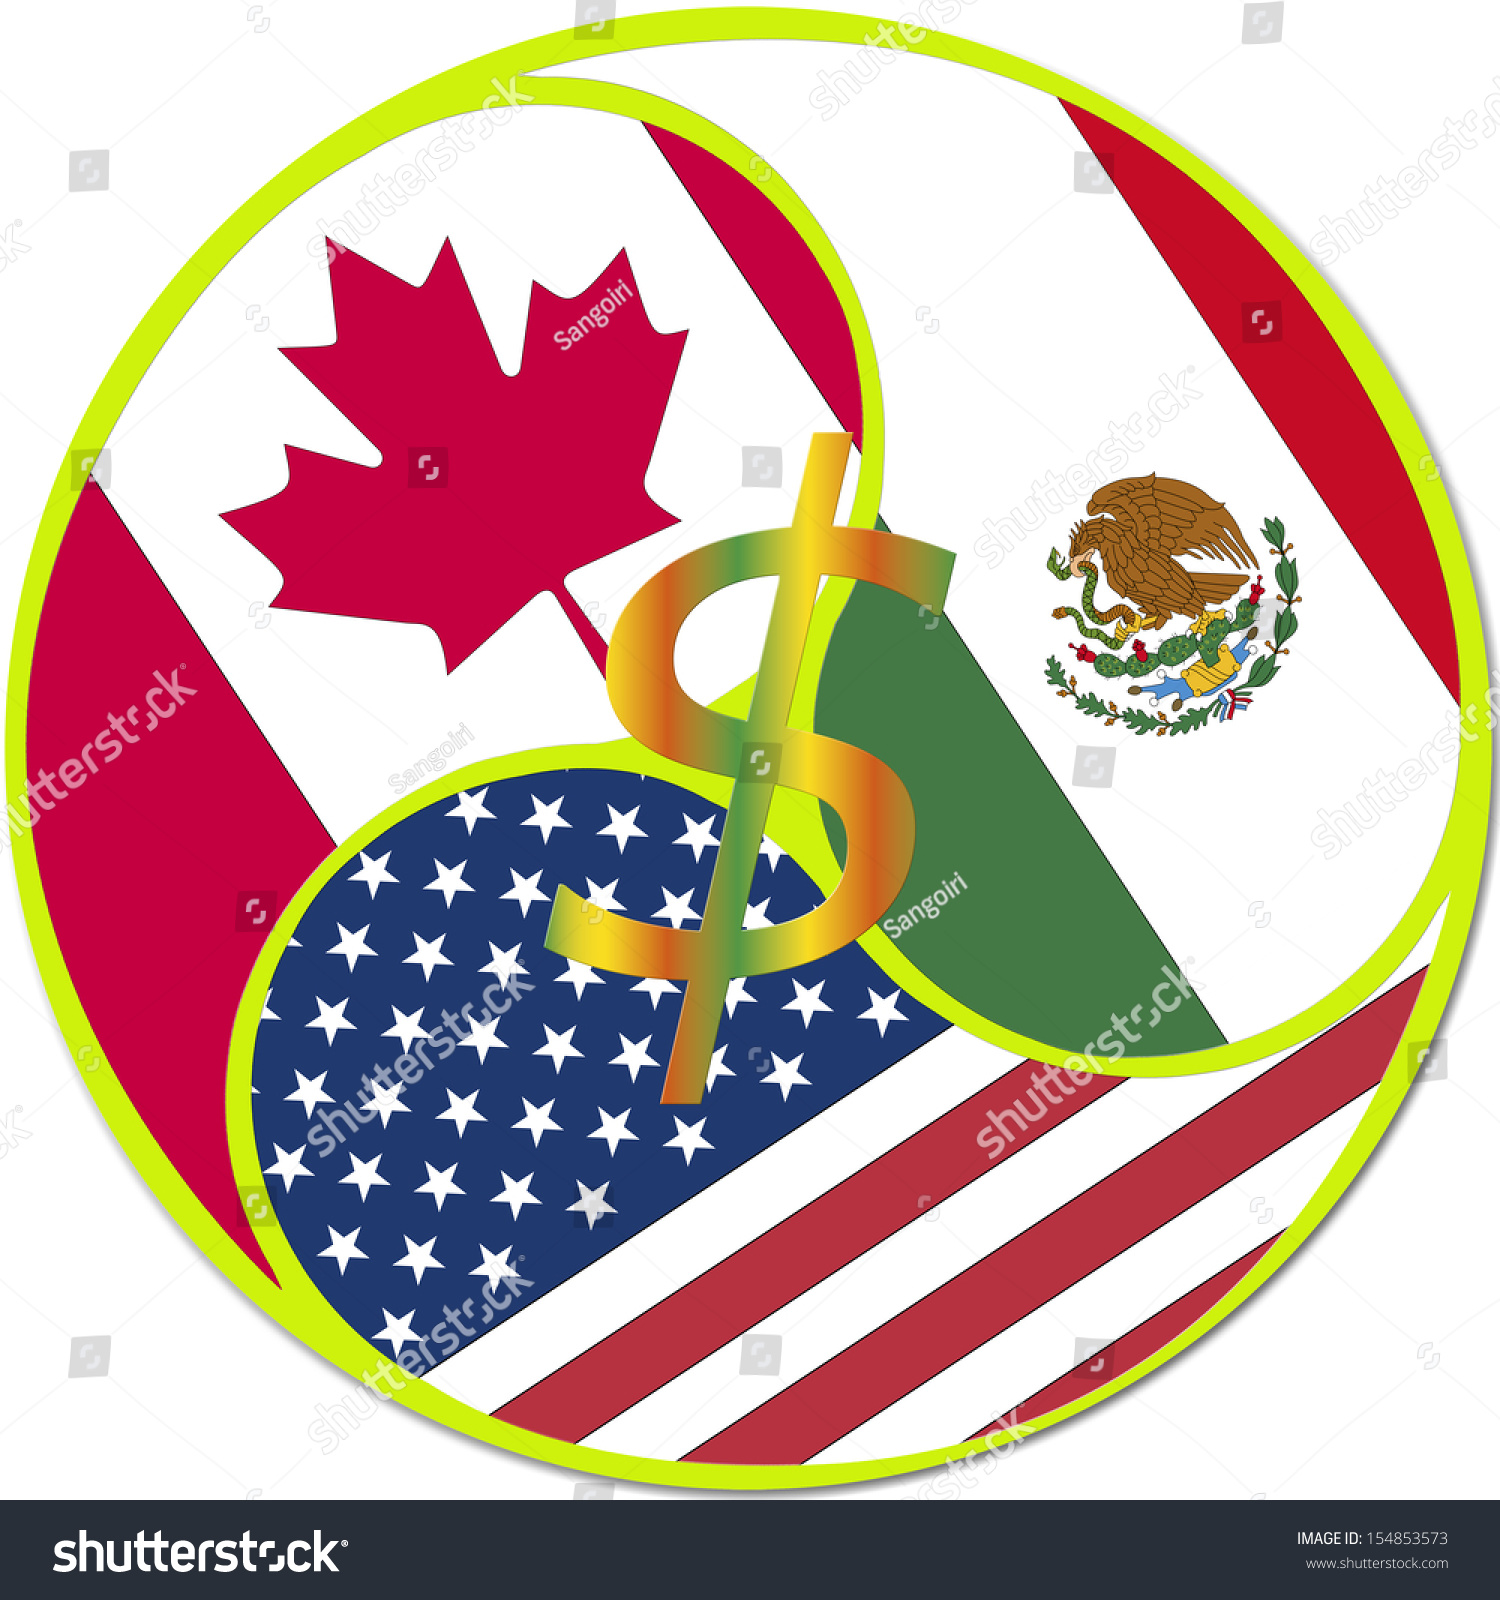 an overview from the canadian and mexican perspective for the north american free trade agreement Start studying mktg 5 learn vocabulary, terms, and more with flashcards, games mcdonald's rejects the global market standardization perspective by: (north american free trade agreement) nafta.